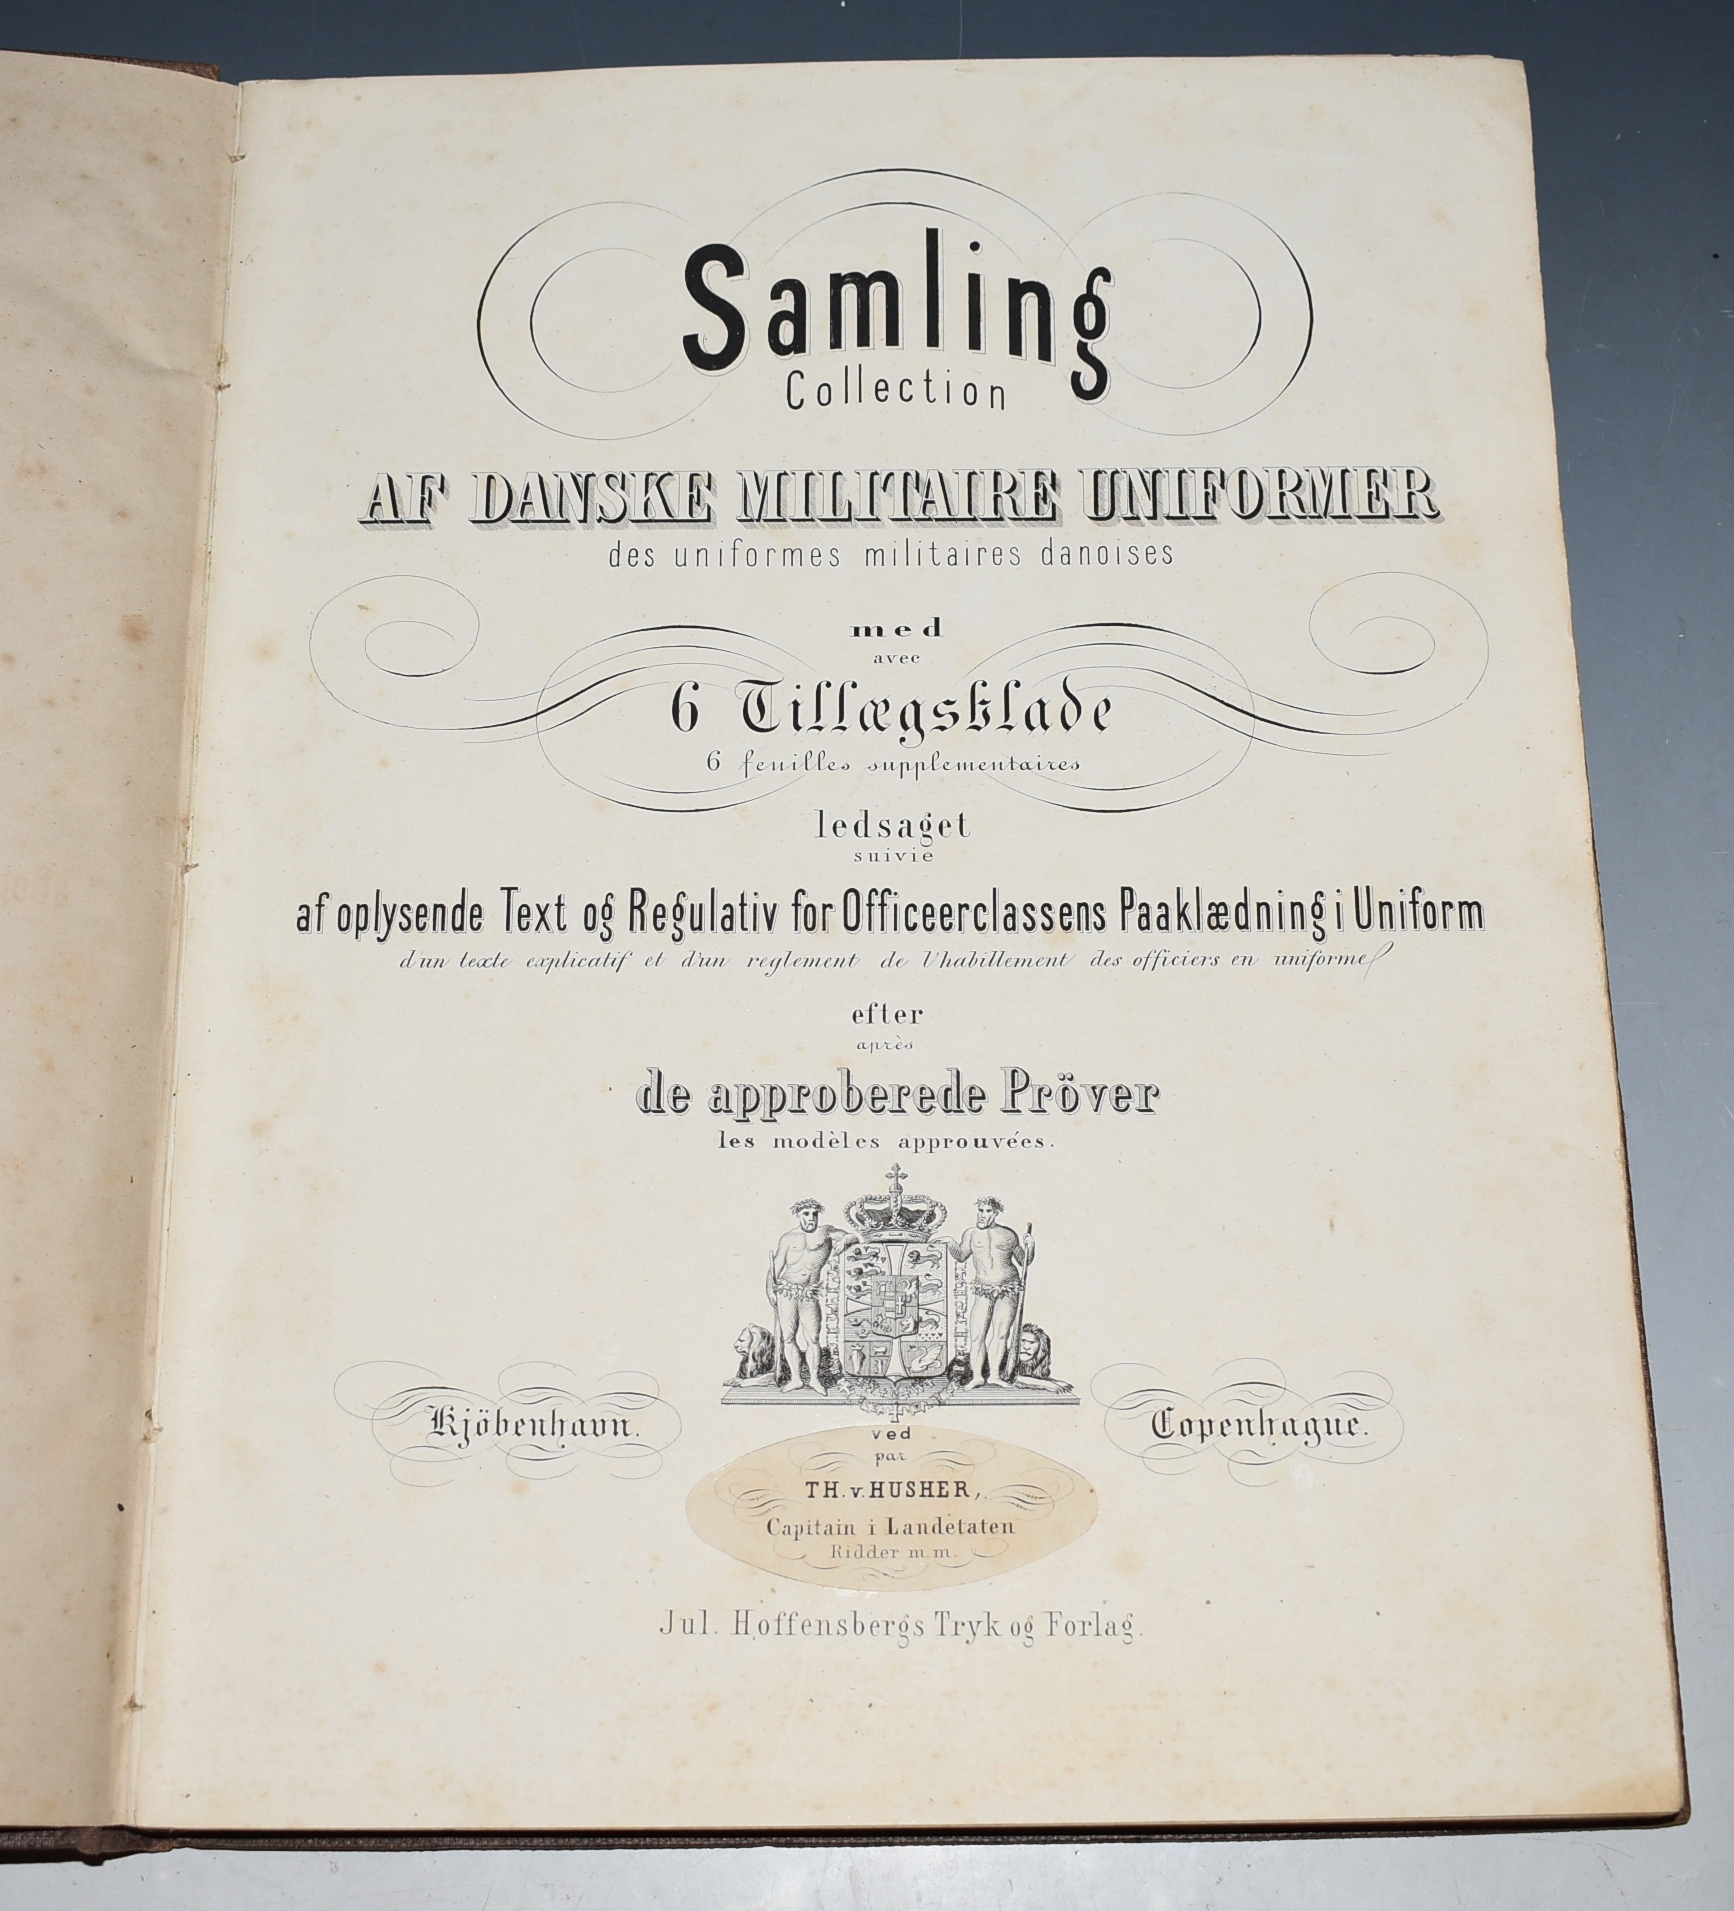 Image for Danske Militaire Uniformer Samling collection af Danske Militaire Uniformer Med 6 Tillaesgsblade. Ledsaget af oplysende text og regulativ for officeerclassens paaklaedning i Uniform, efter de approberede prover. (Collection of Danish Military Uniforms. With 6 Supplementary Leaves. Accompanied by informative text and regulations for the uniform of the office class, after the approved tests.)